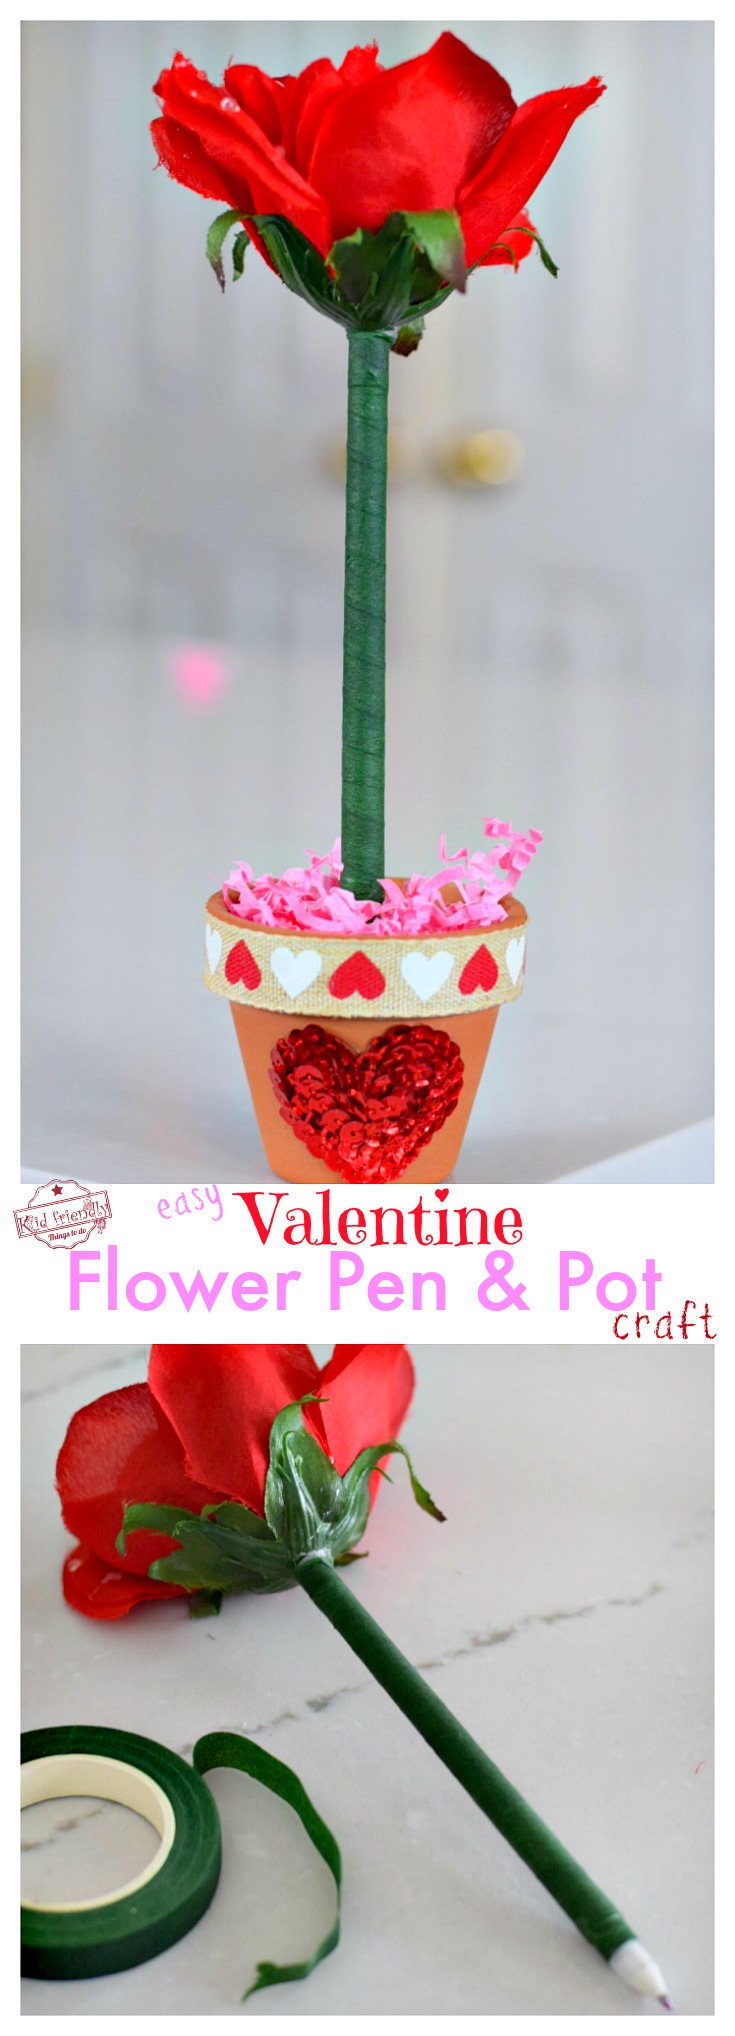 Love this Easy DIY Flower Pen and Terra Cotta Pot Craft for a Valentine's Day Gift - Perfect for kids or teens to make and give away! So Cute & easy! Perfect for school parties or a gift for your love! www.kidfriendlythingstodo.com